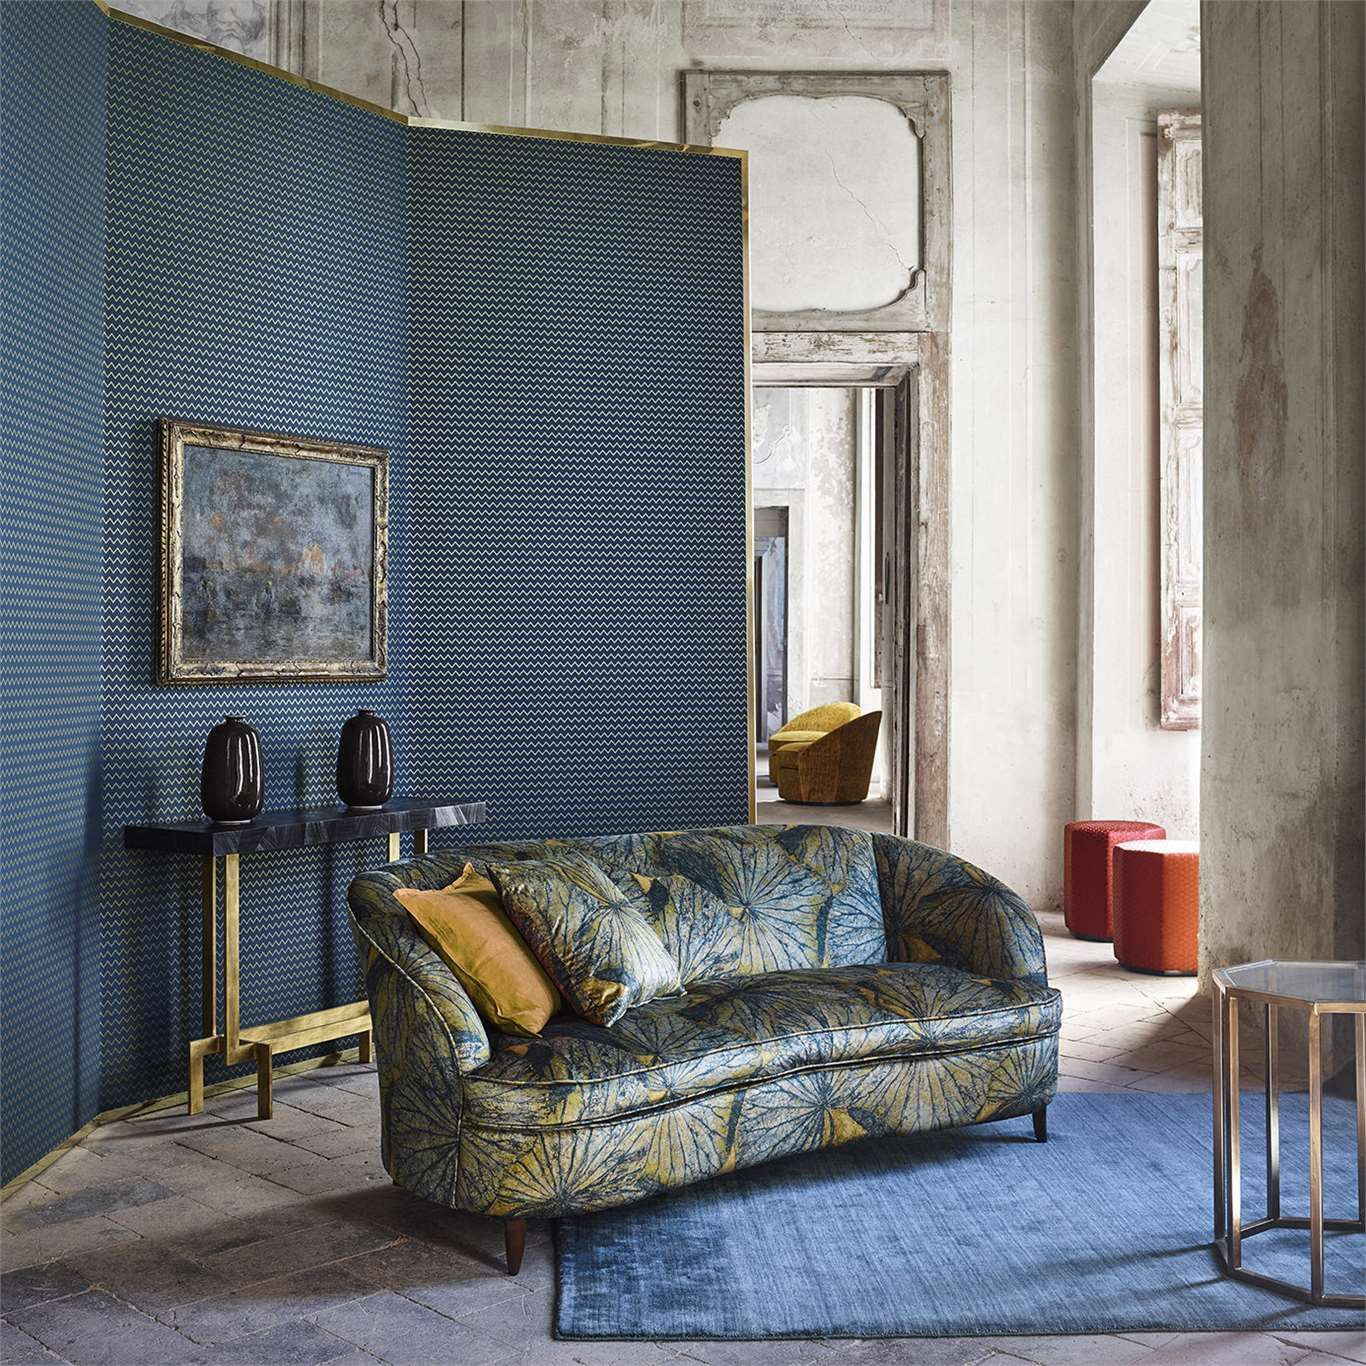 #Zoffany Taisho 322645 Fabric Fabric | 2018 #DesignerFabric Collections |  TM Interiors Limited Lotus Leaves Have Been Intricately Crafted To Create  The ...